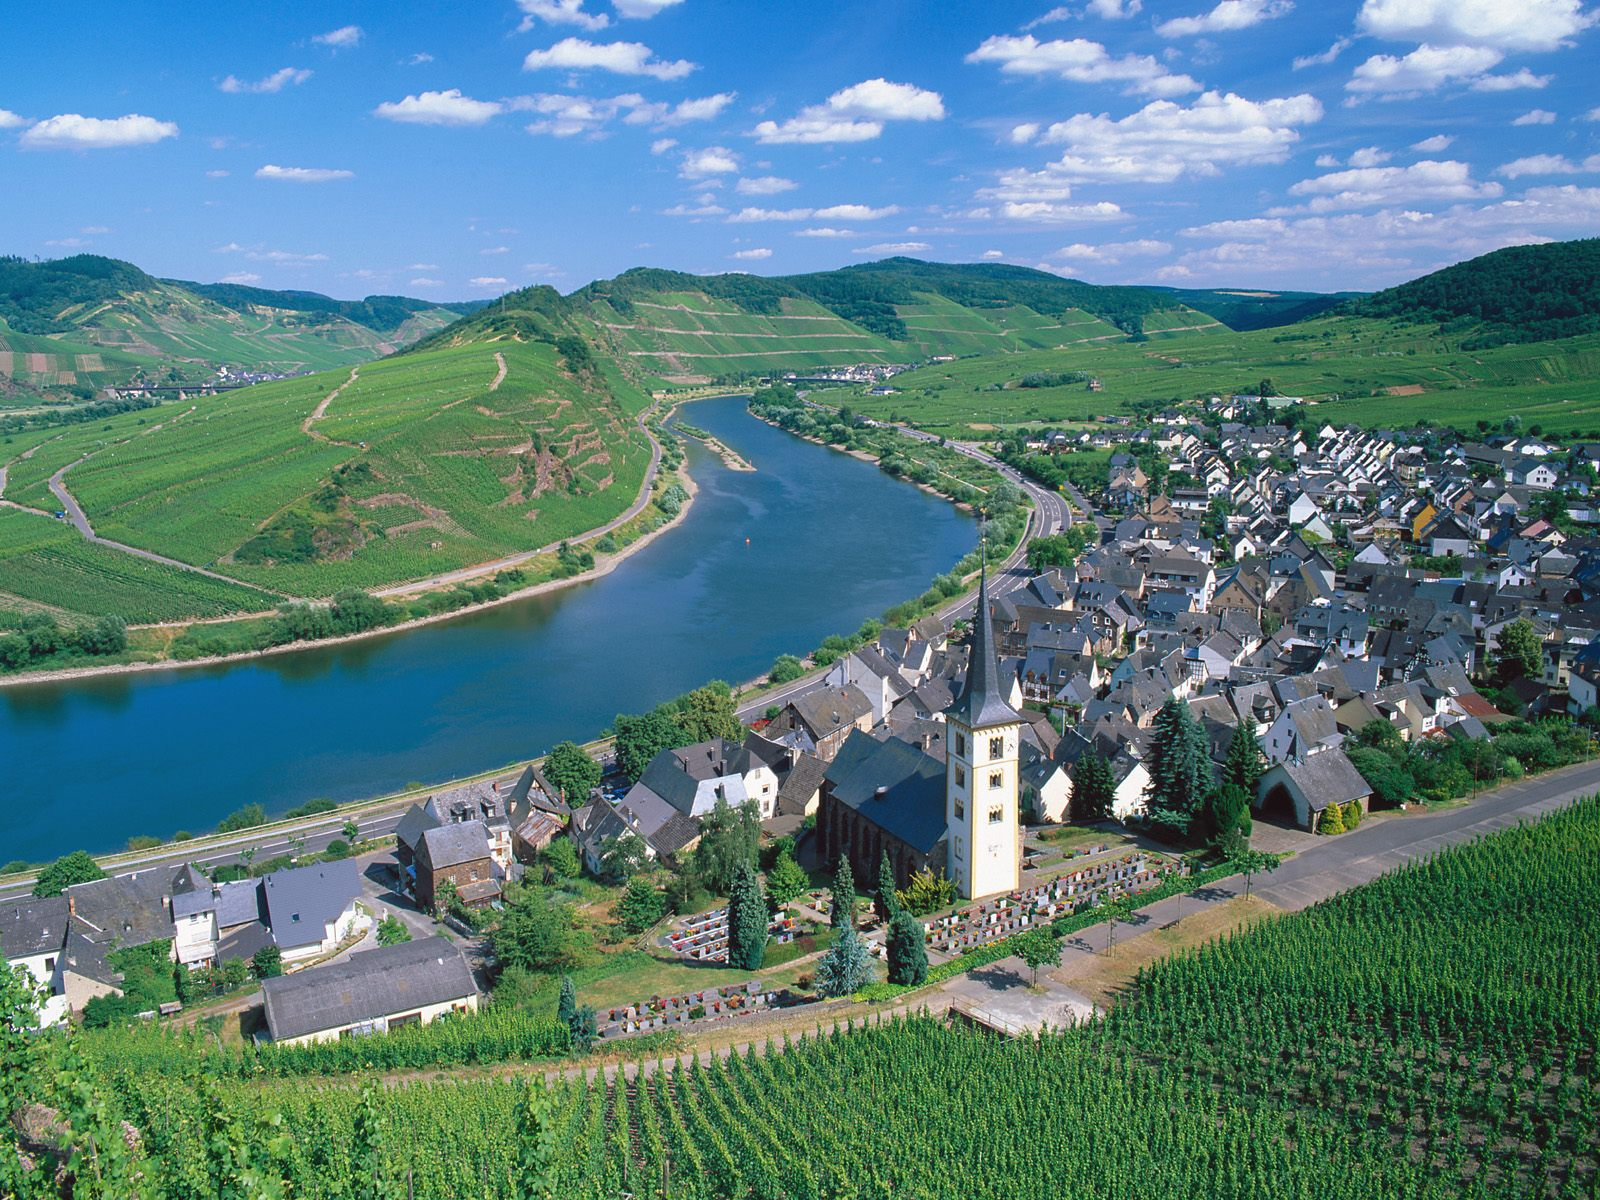 City of Bremm and Moselle River